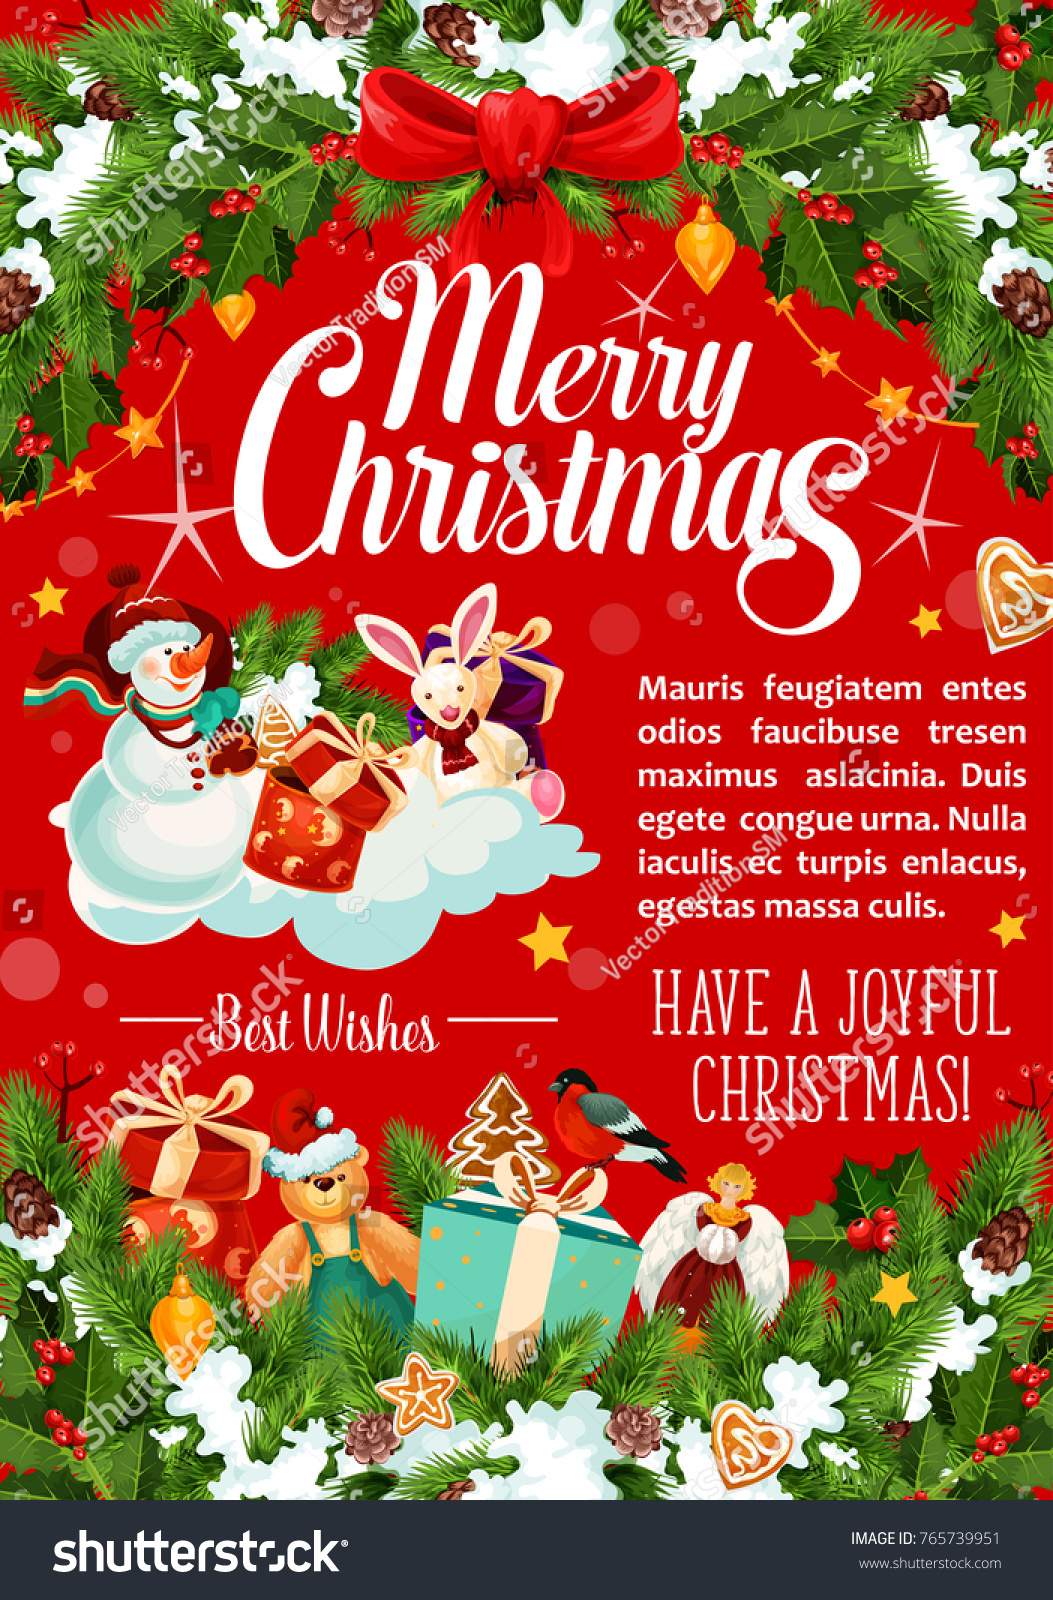 Merry Christmas Best Wishes Greeting Card Stock Vector (Royalty Free ...